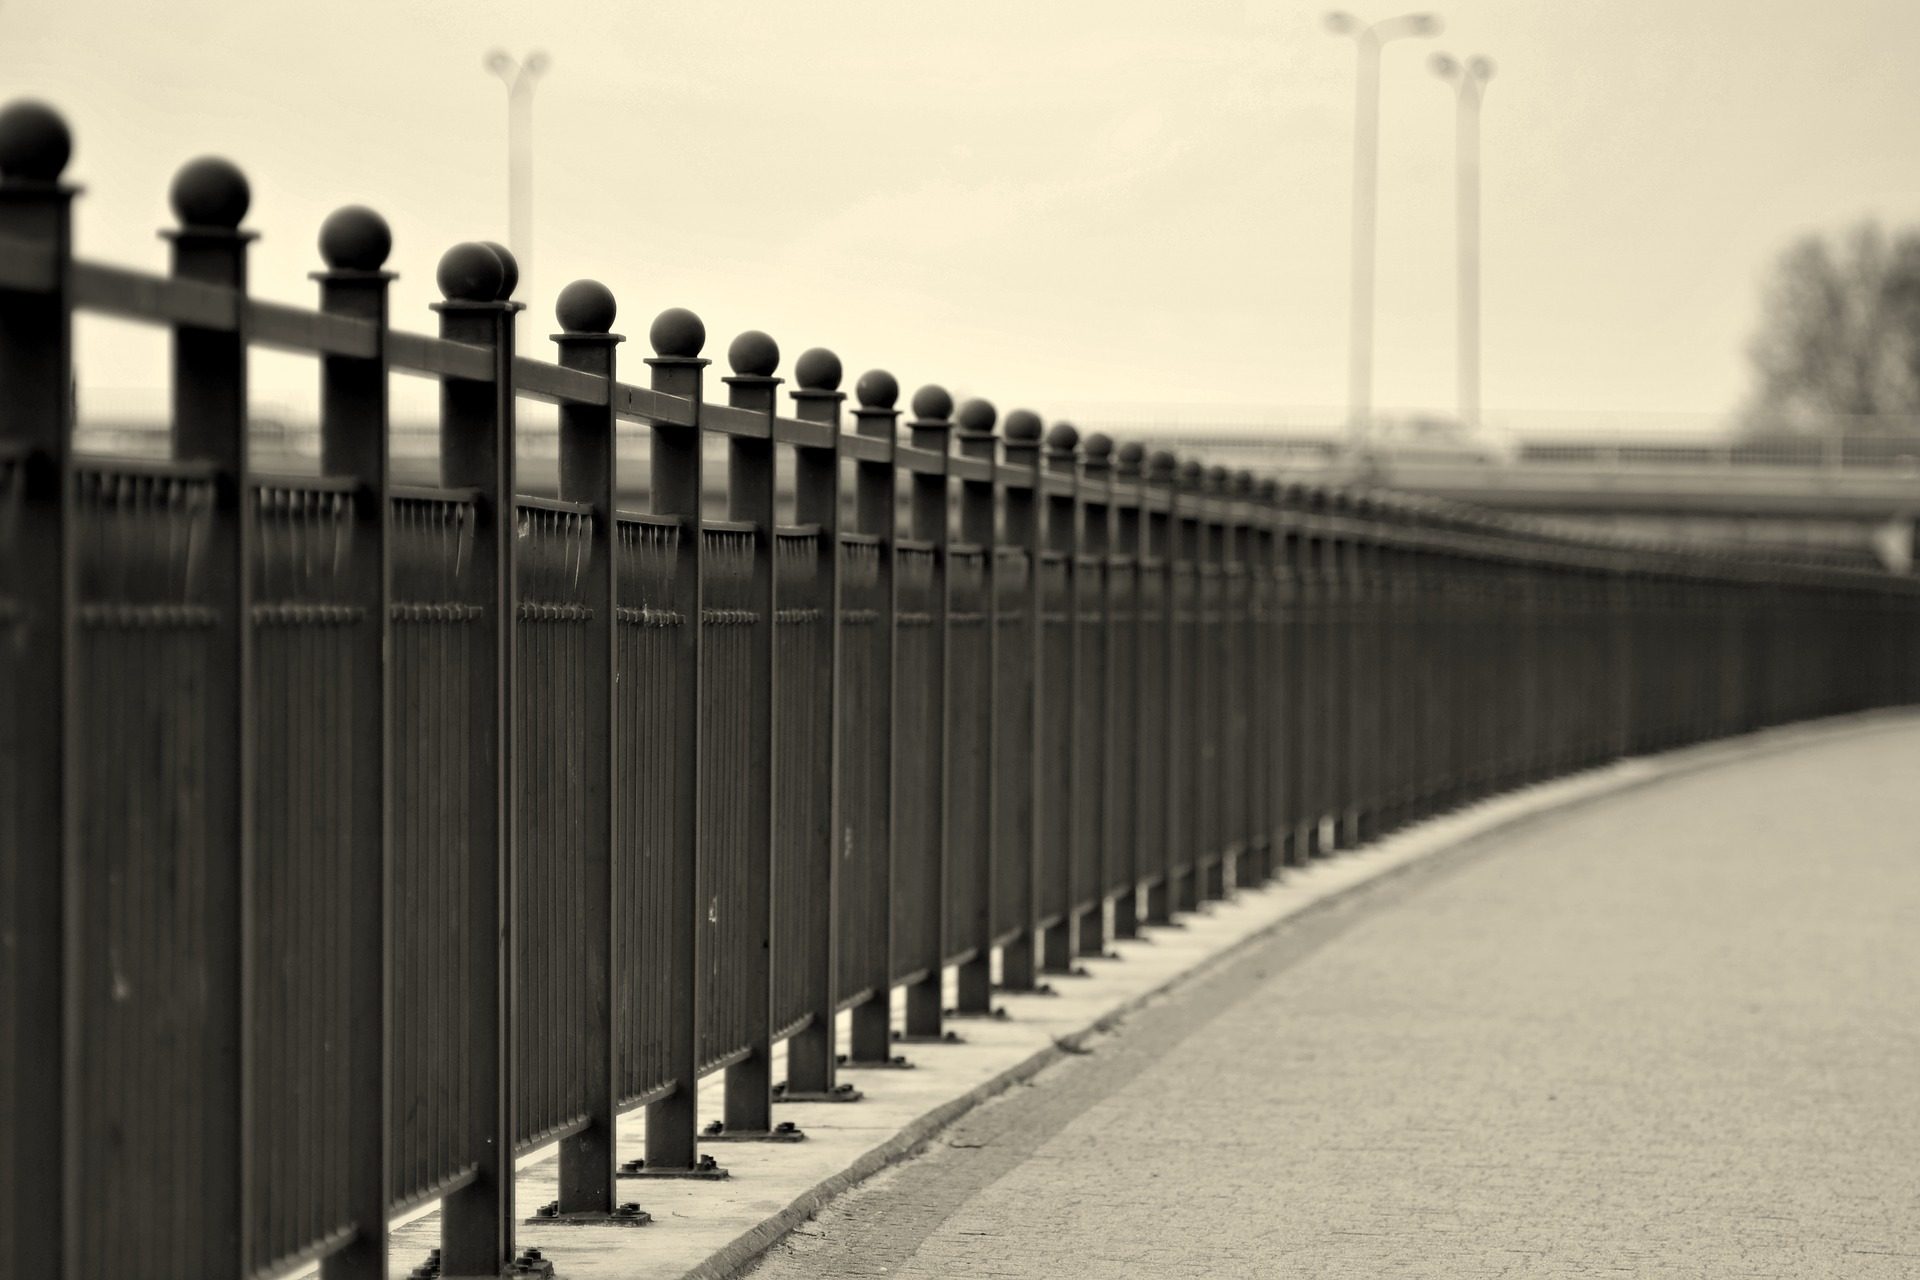 the-fence-2142212_1920